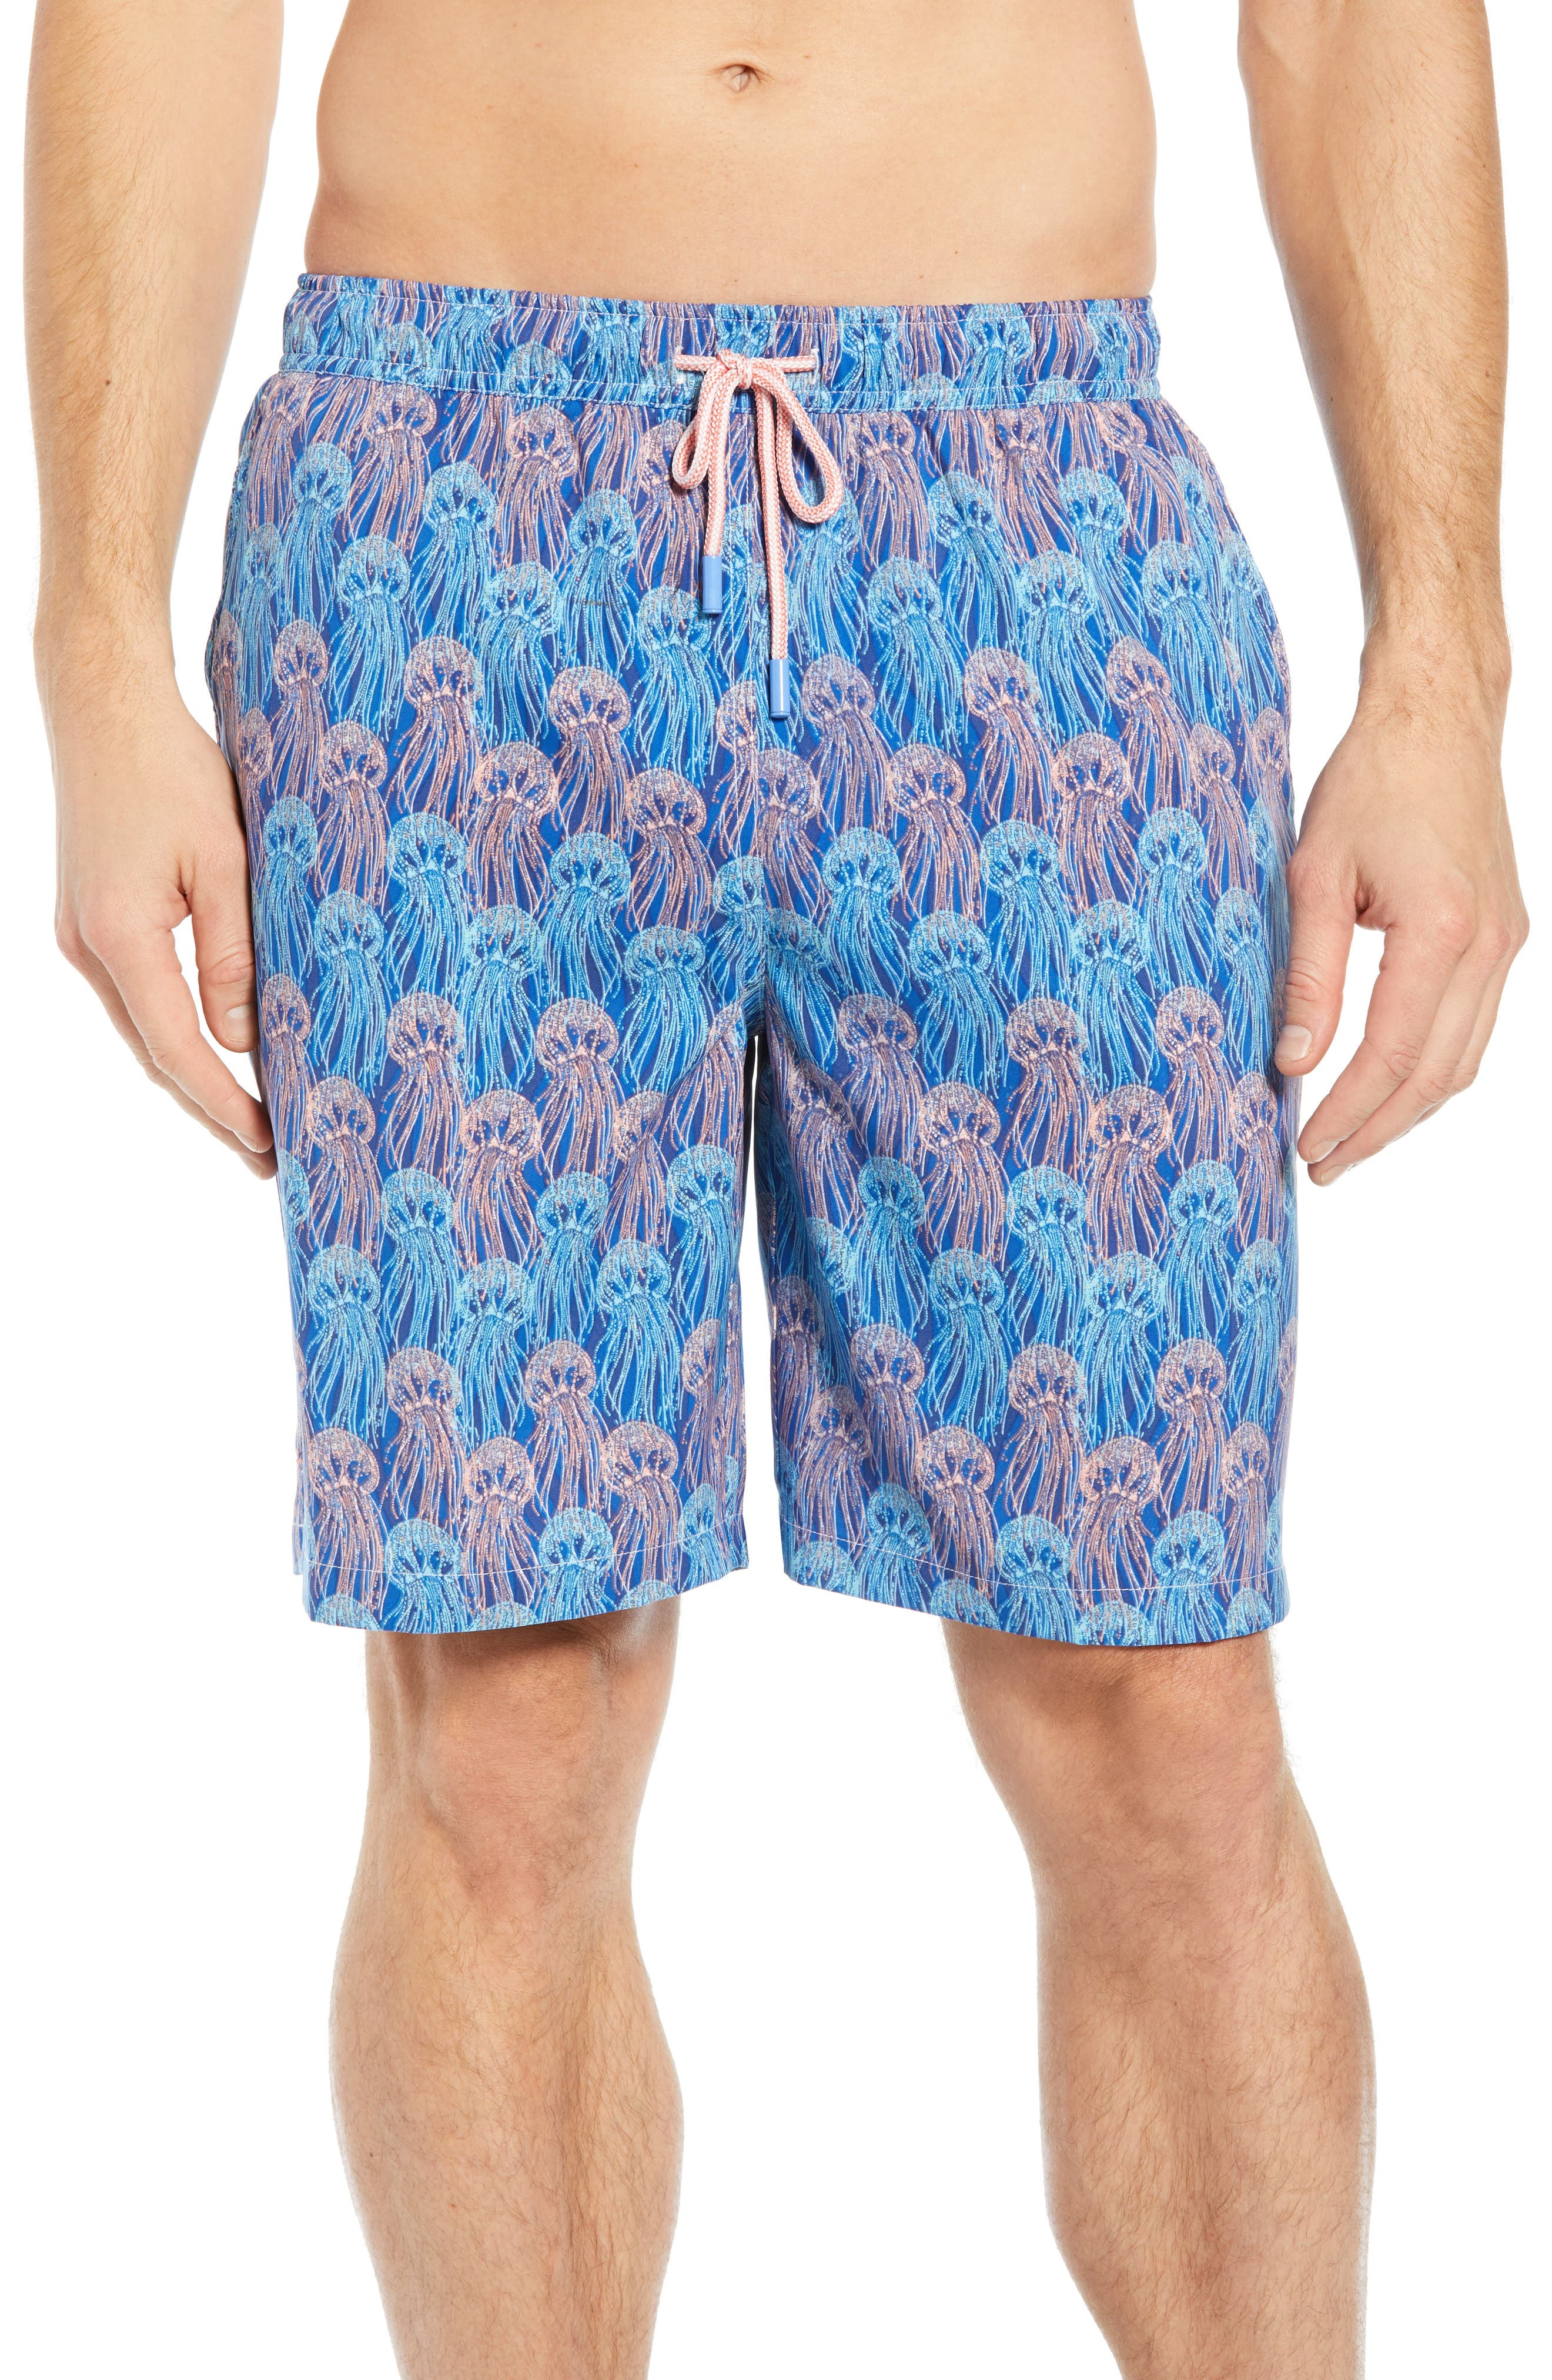 Peter Millar Jellys Swim Trunks, Blue